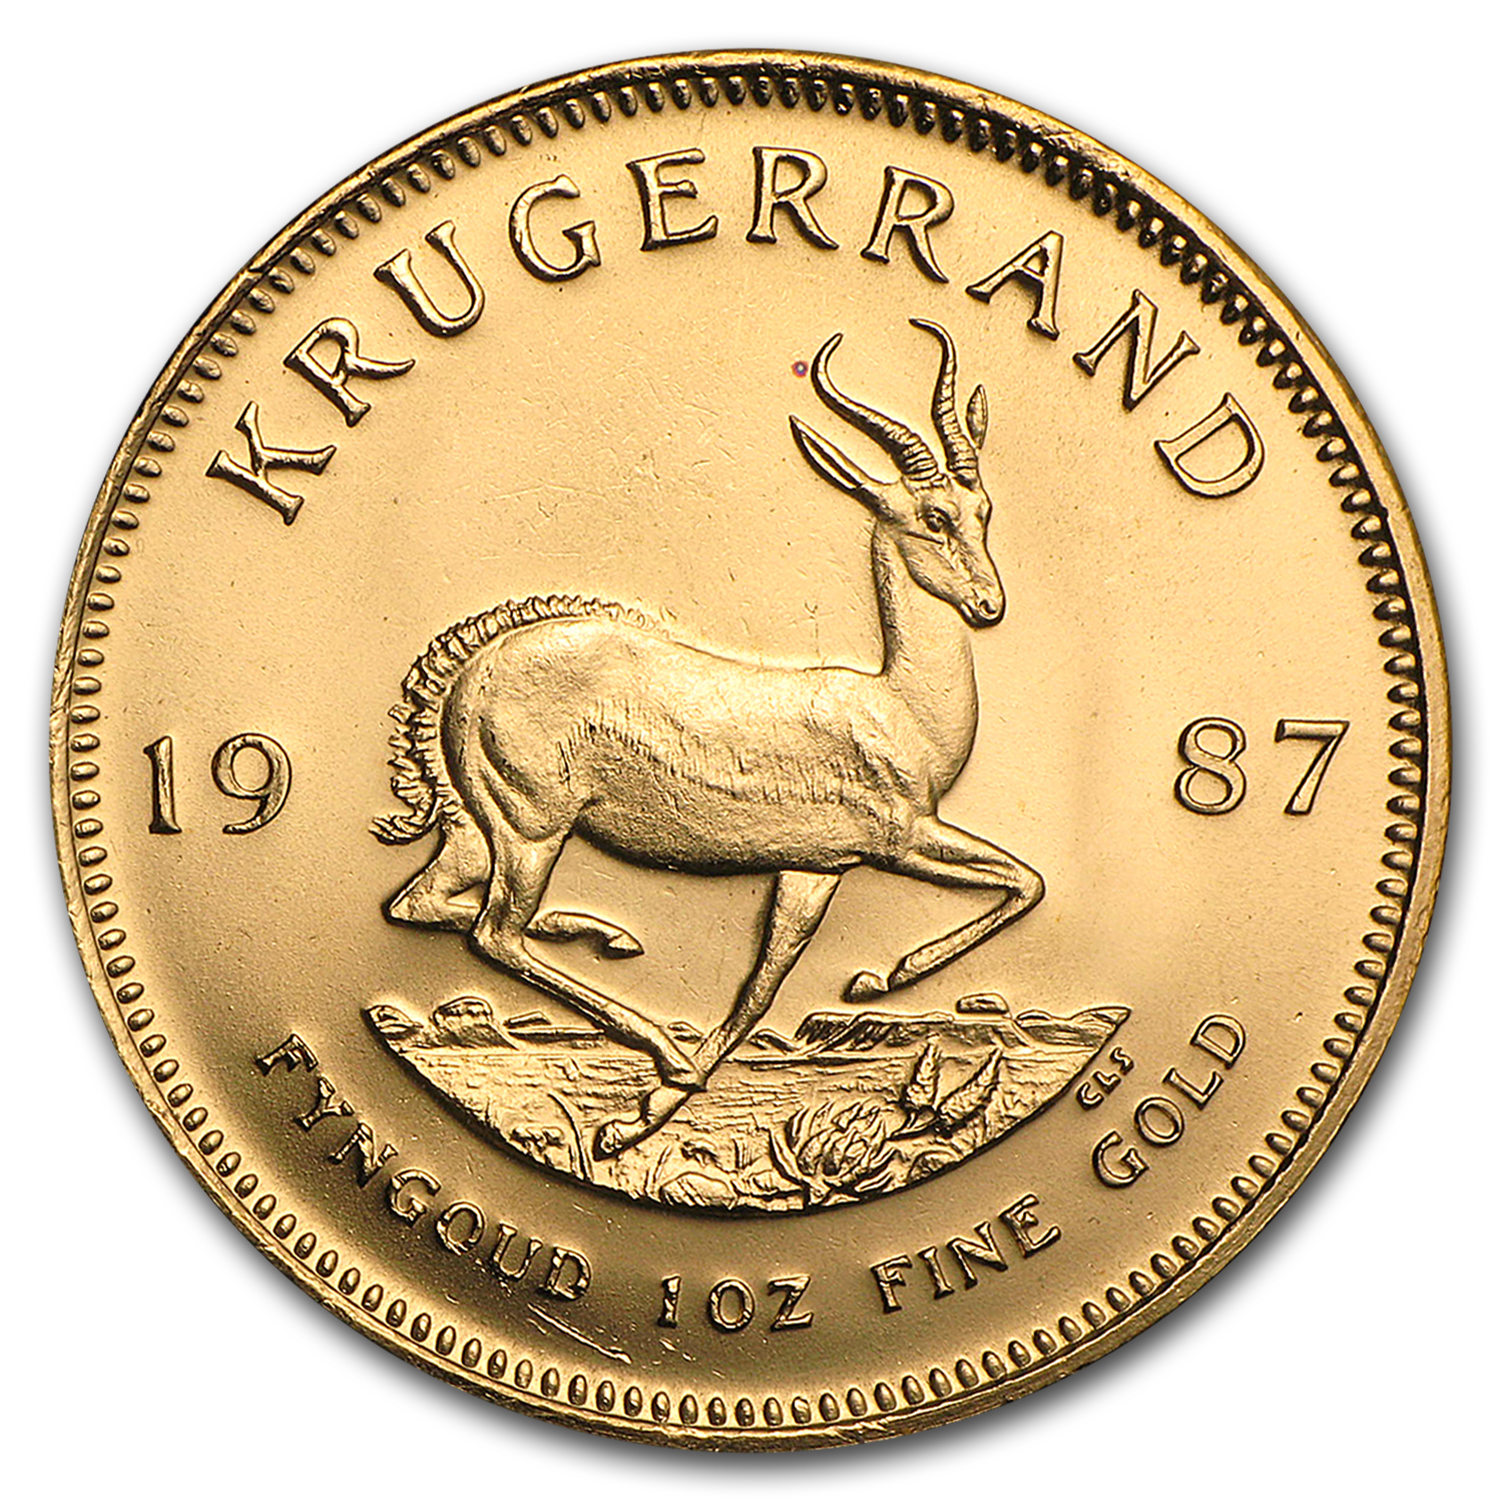 1987 South Africa 1 oz Gold Krugerrand